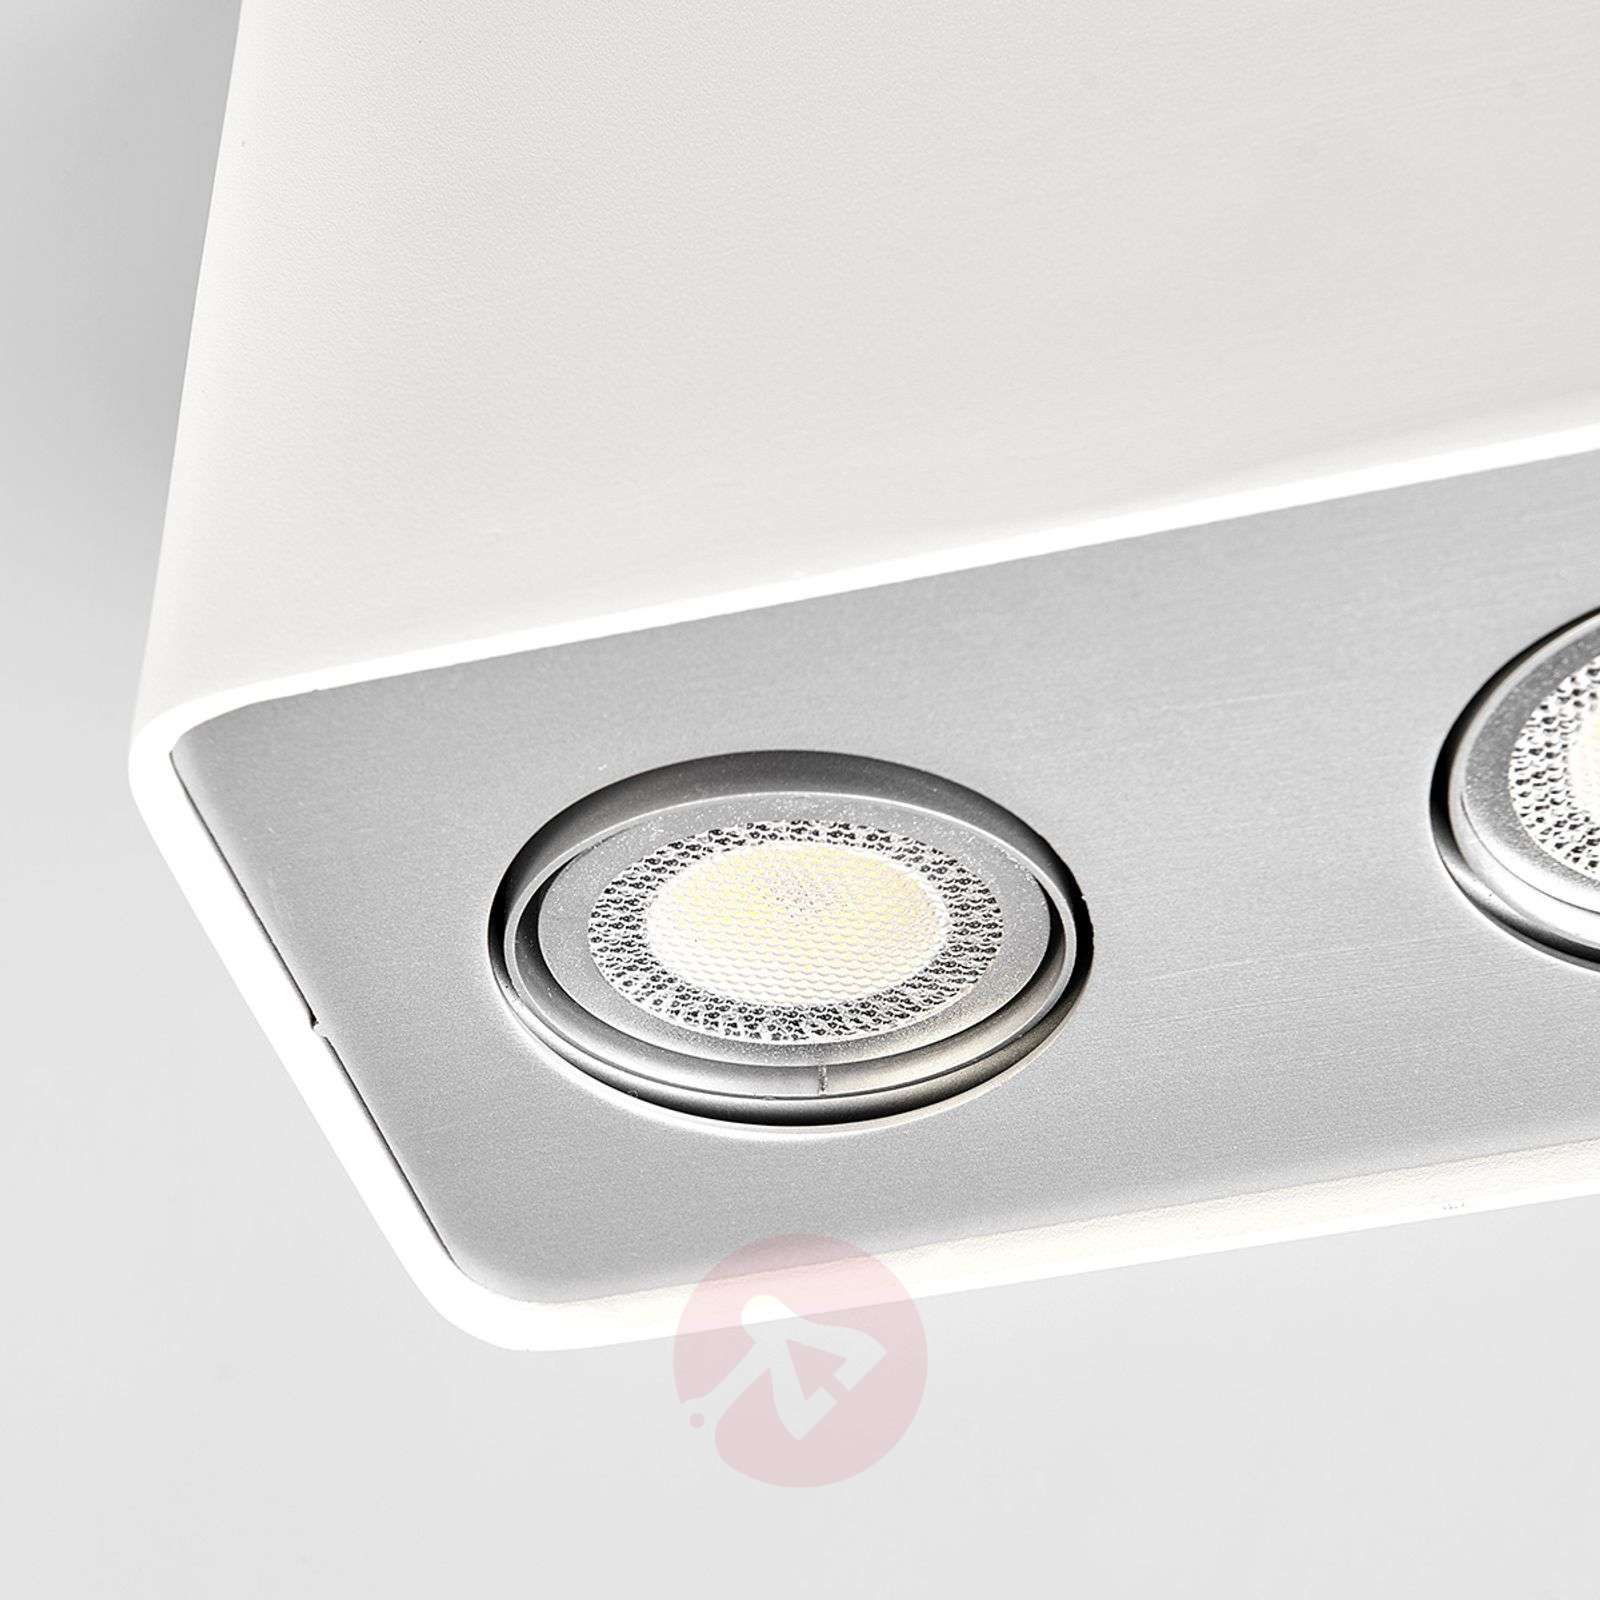 3-pkt. downlight LED GU10 GILIANO, biały-9975007-01